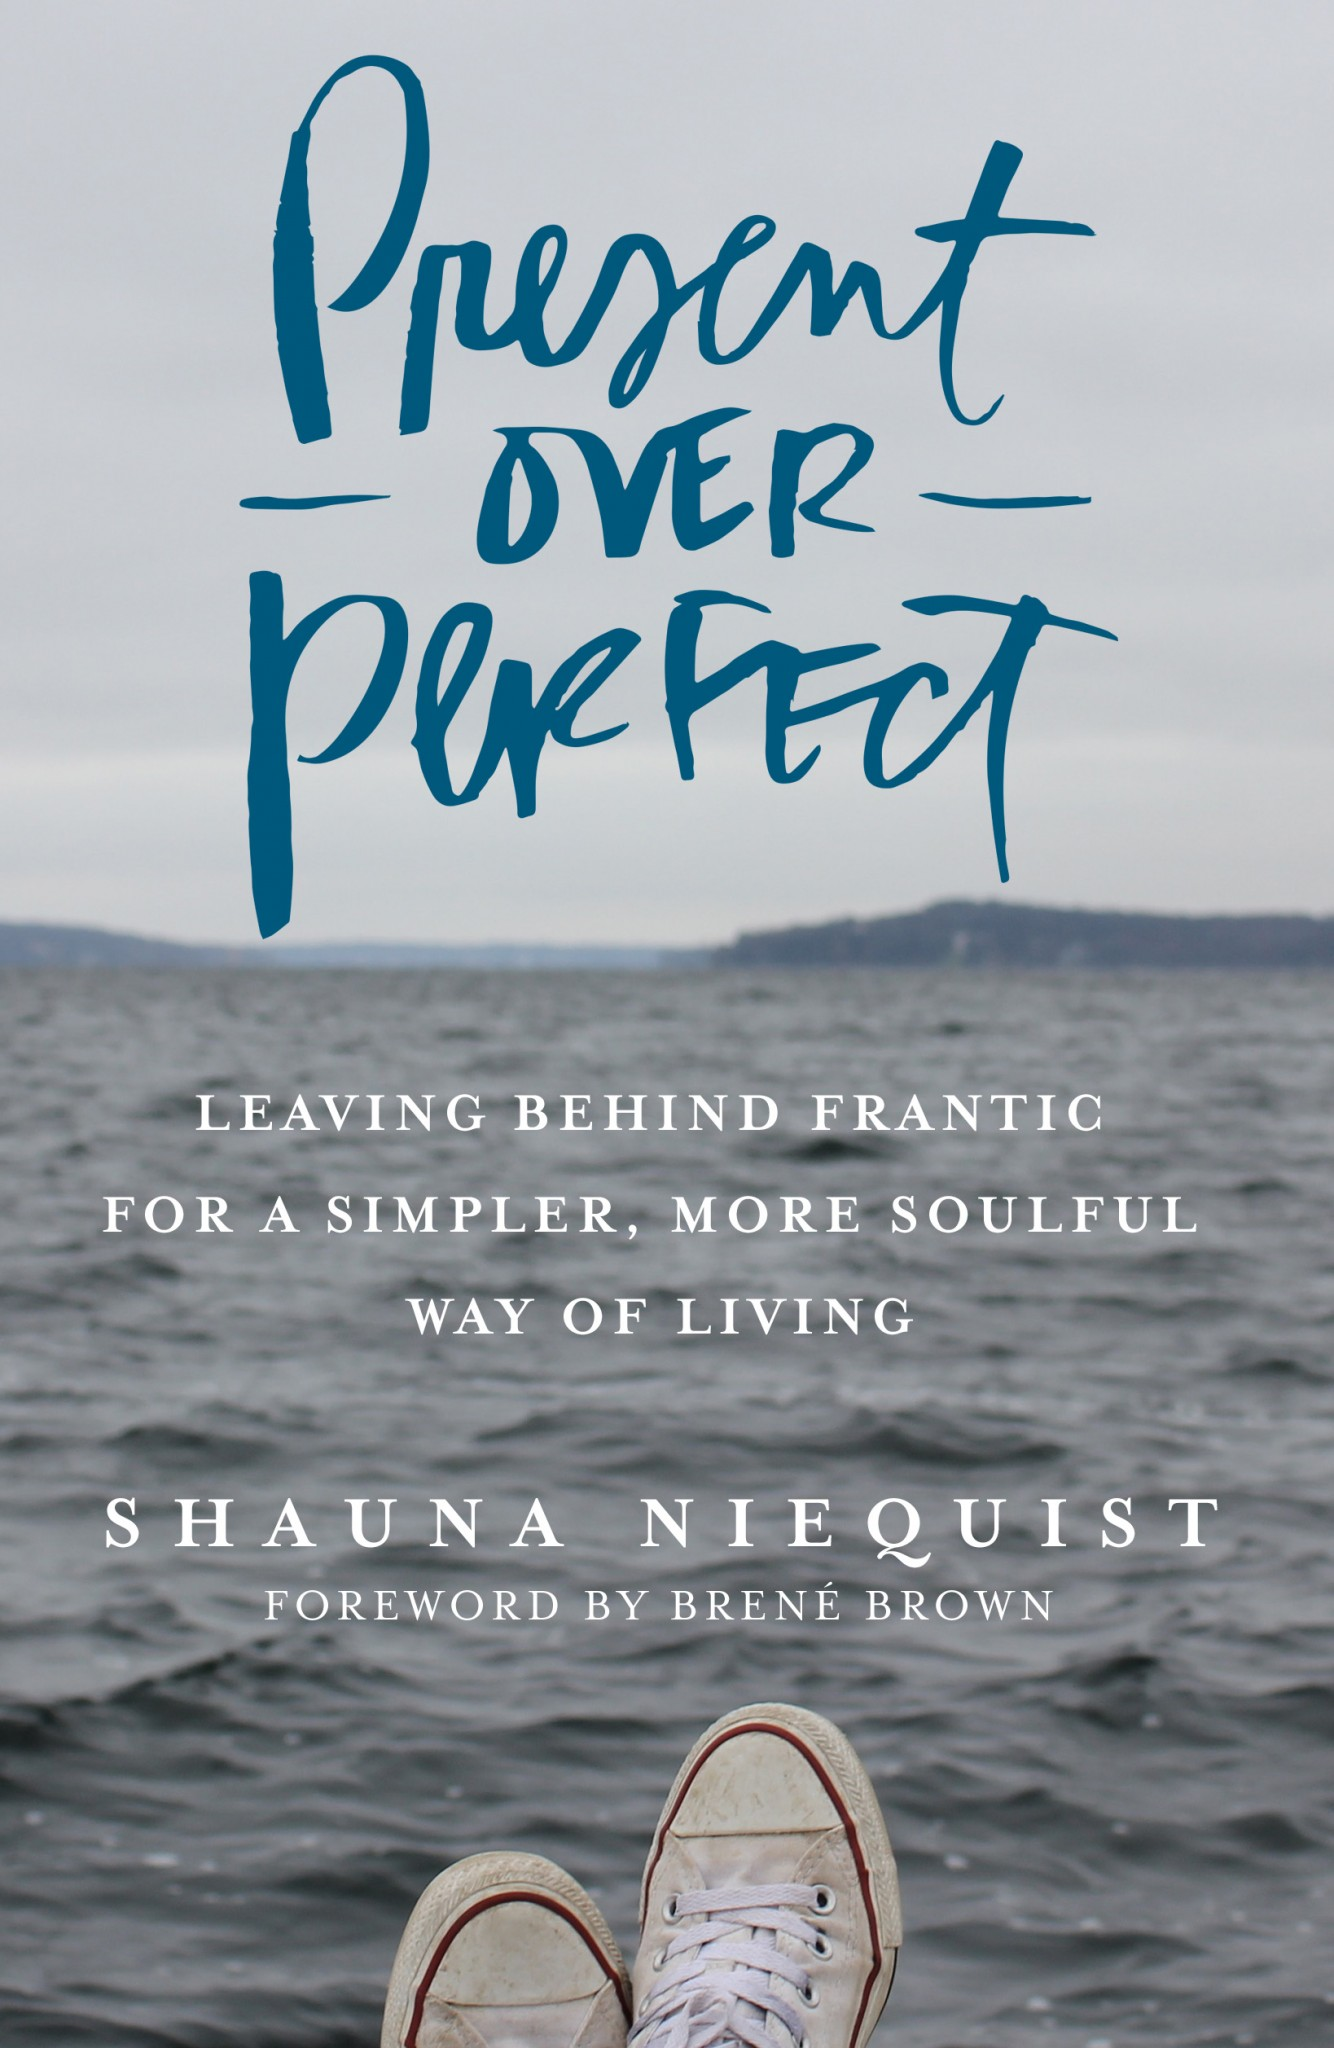 Present Over Perfect: Leaving Behind Frantic For A Simpler, More Soulful Way Of Living  by Shauna Niequist